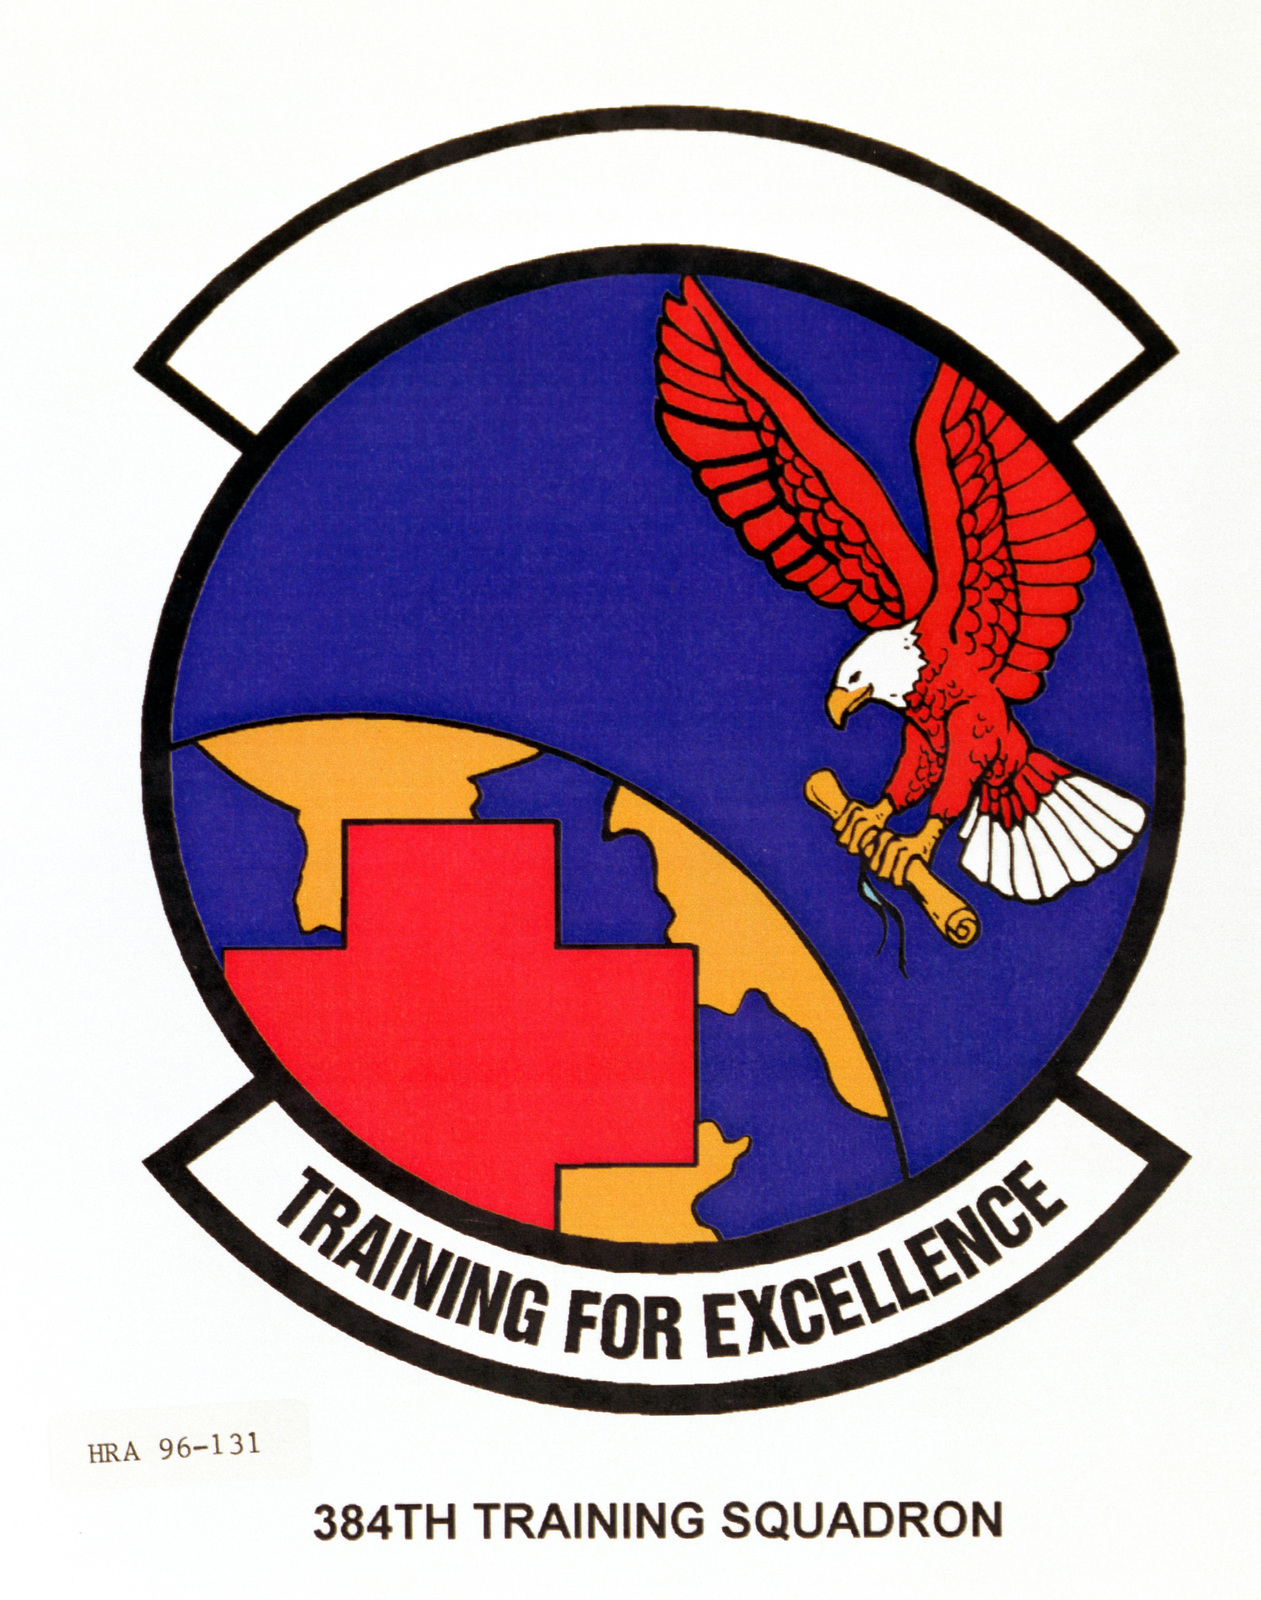 Air Force Organizational Emblem. 384th Training Squadron Exact Date Shot Unknown